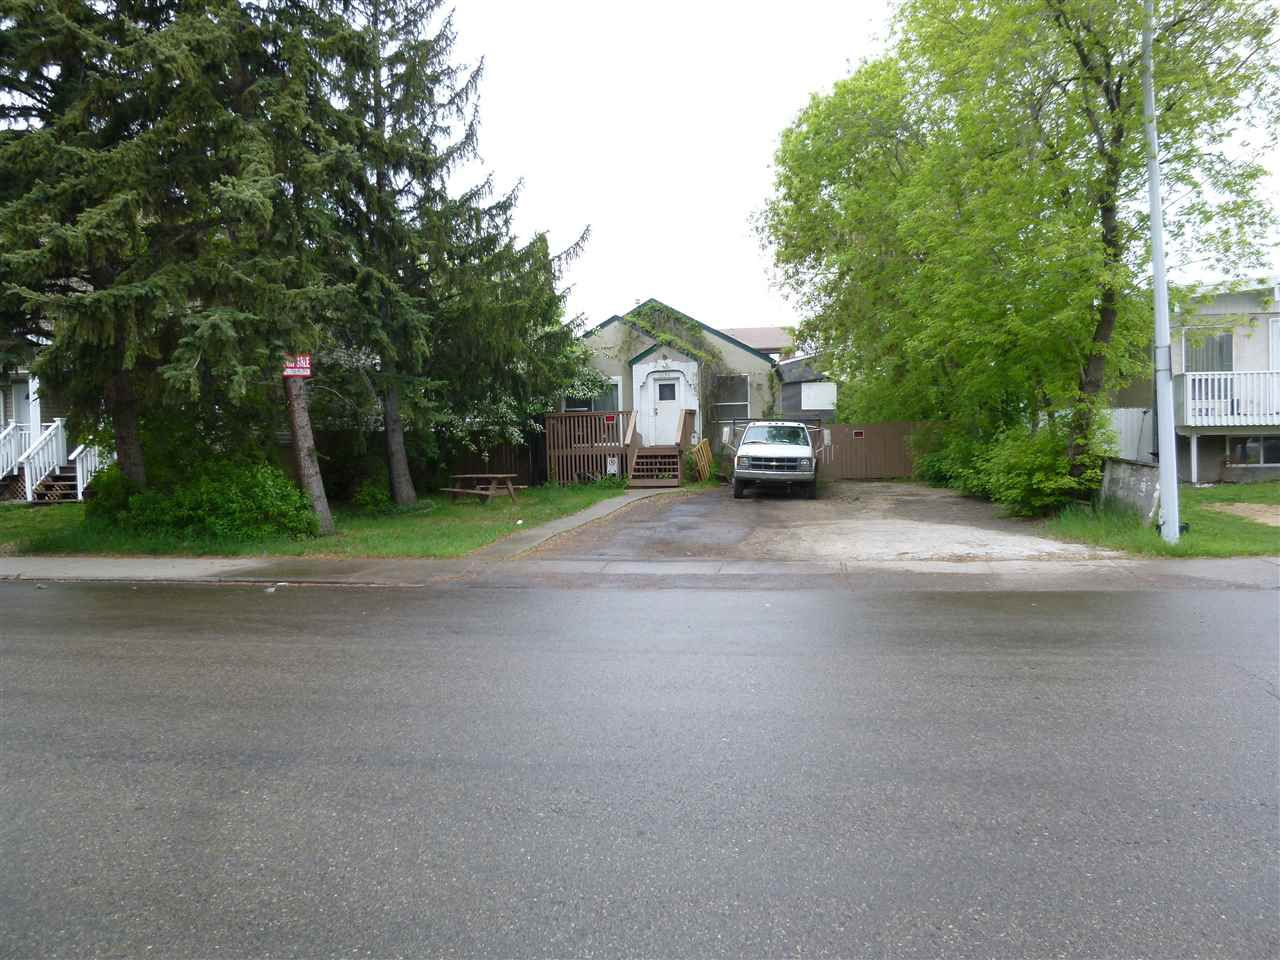 Main Photo: 10150 159 Street in Edmonton: Zone 21 House for sale : MLS®# E4158481